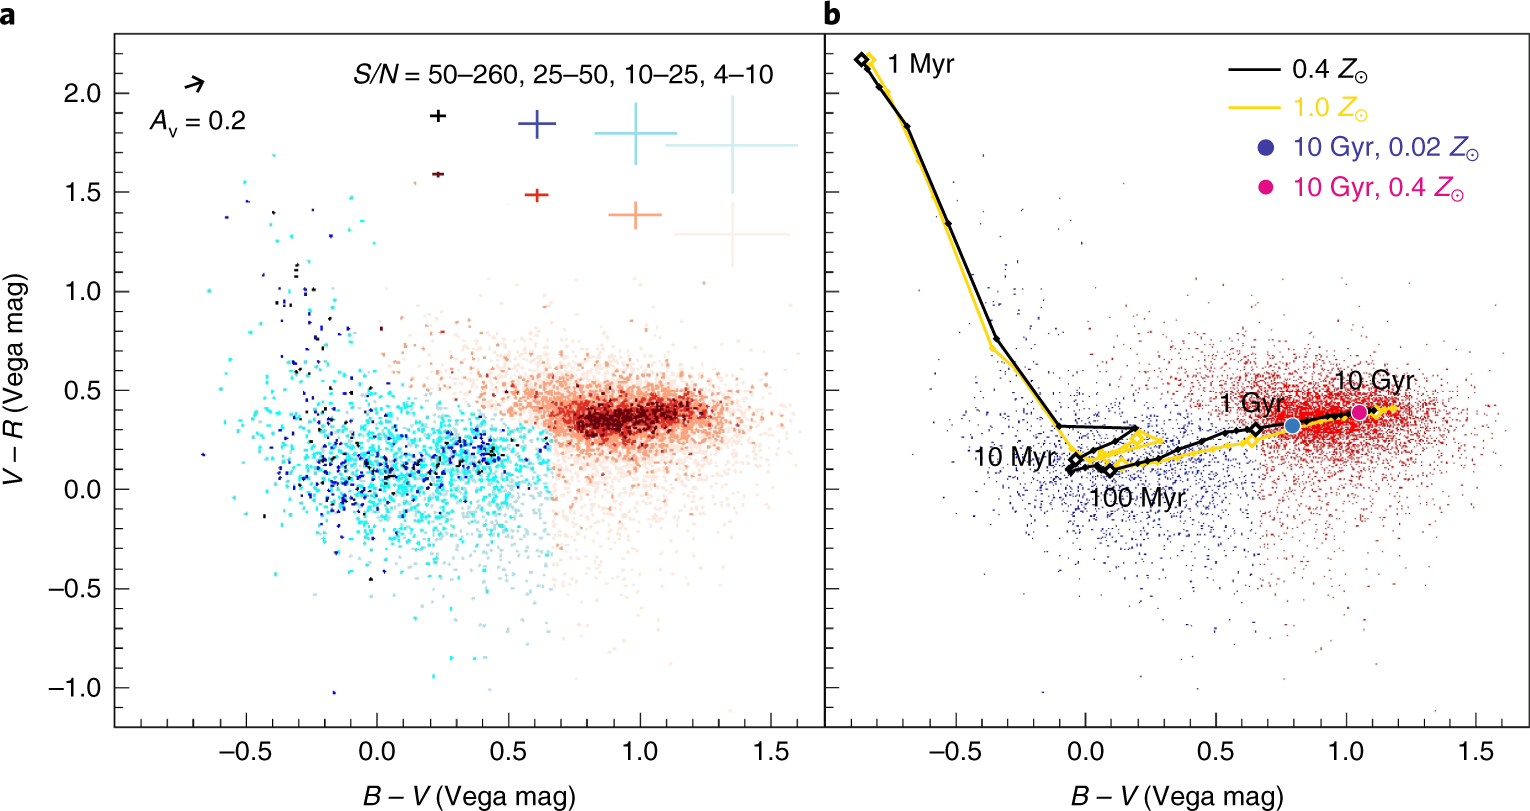 Sustained formation of progenitor globular clusters in a giant ellipti